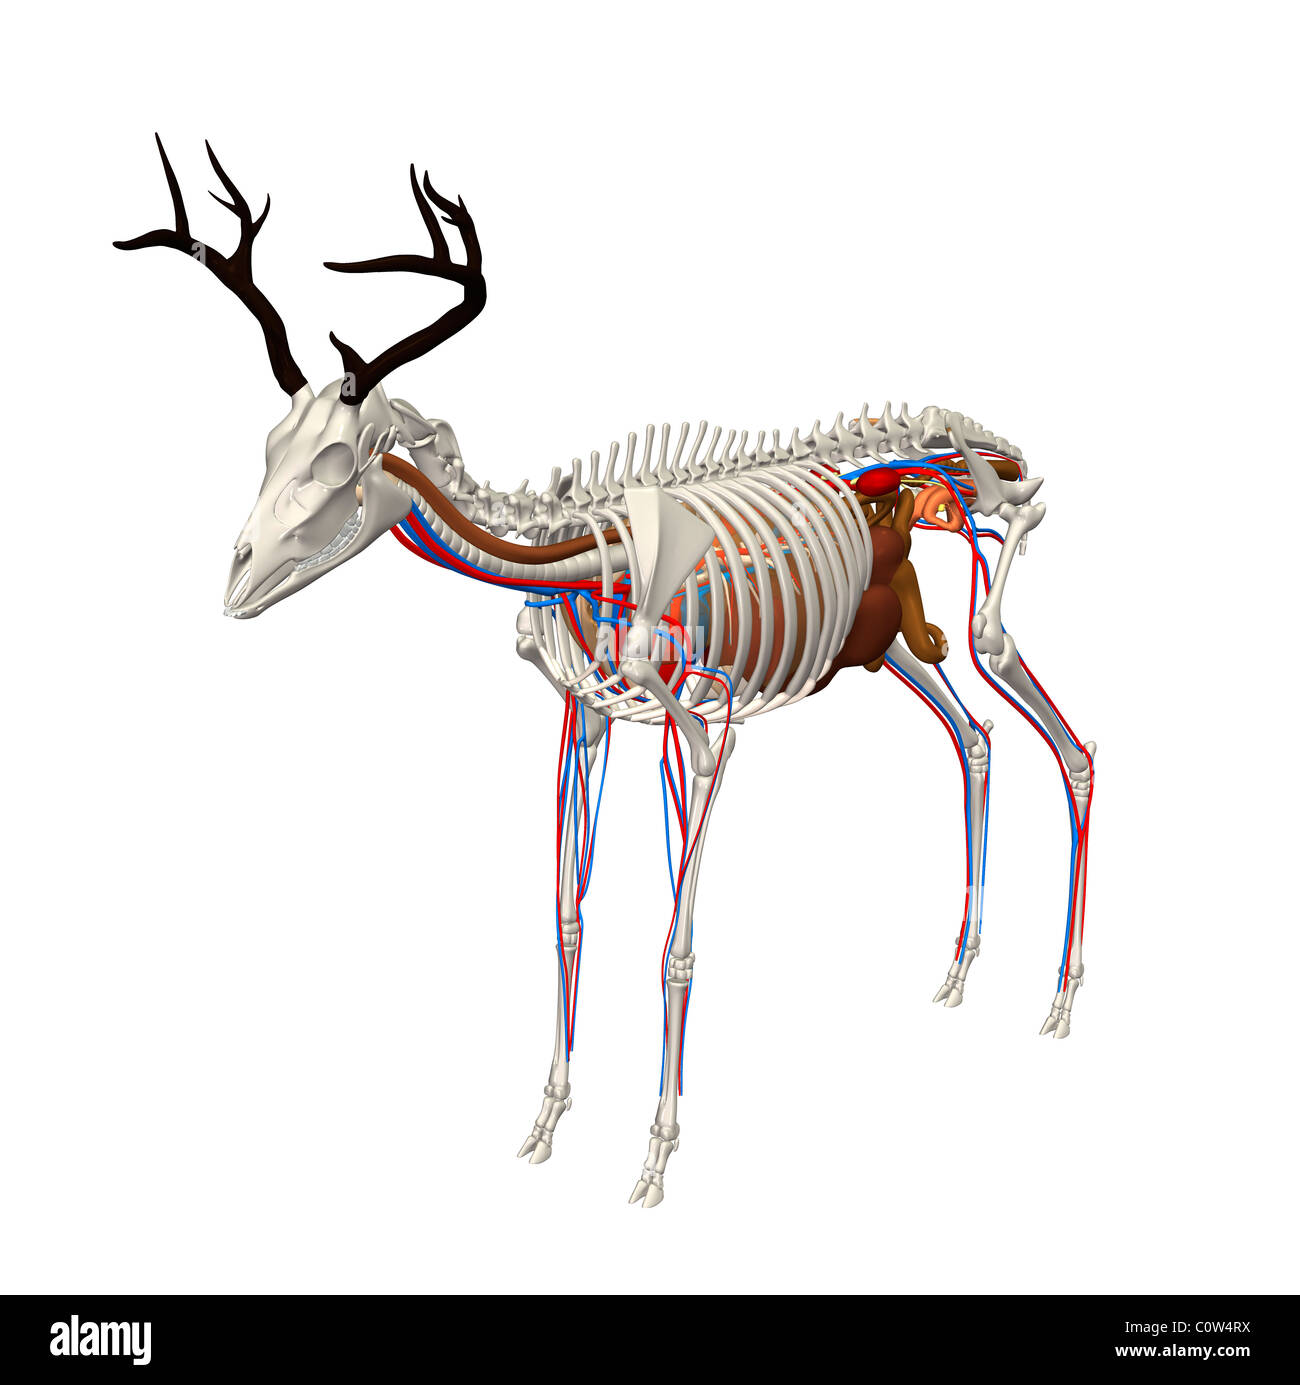 Body Deer Stock Photos & Body Deer Stock Images - Alamy